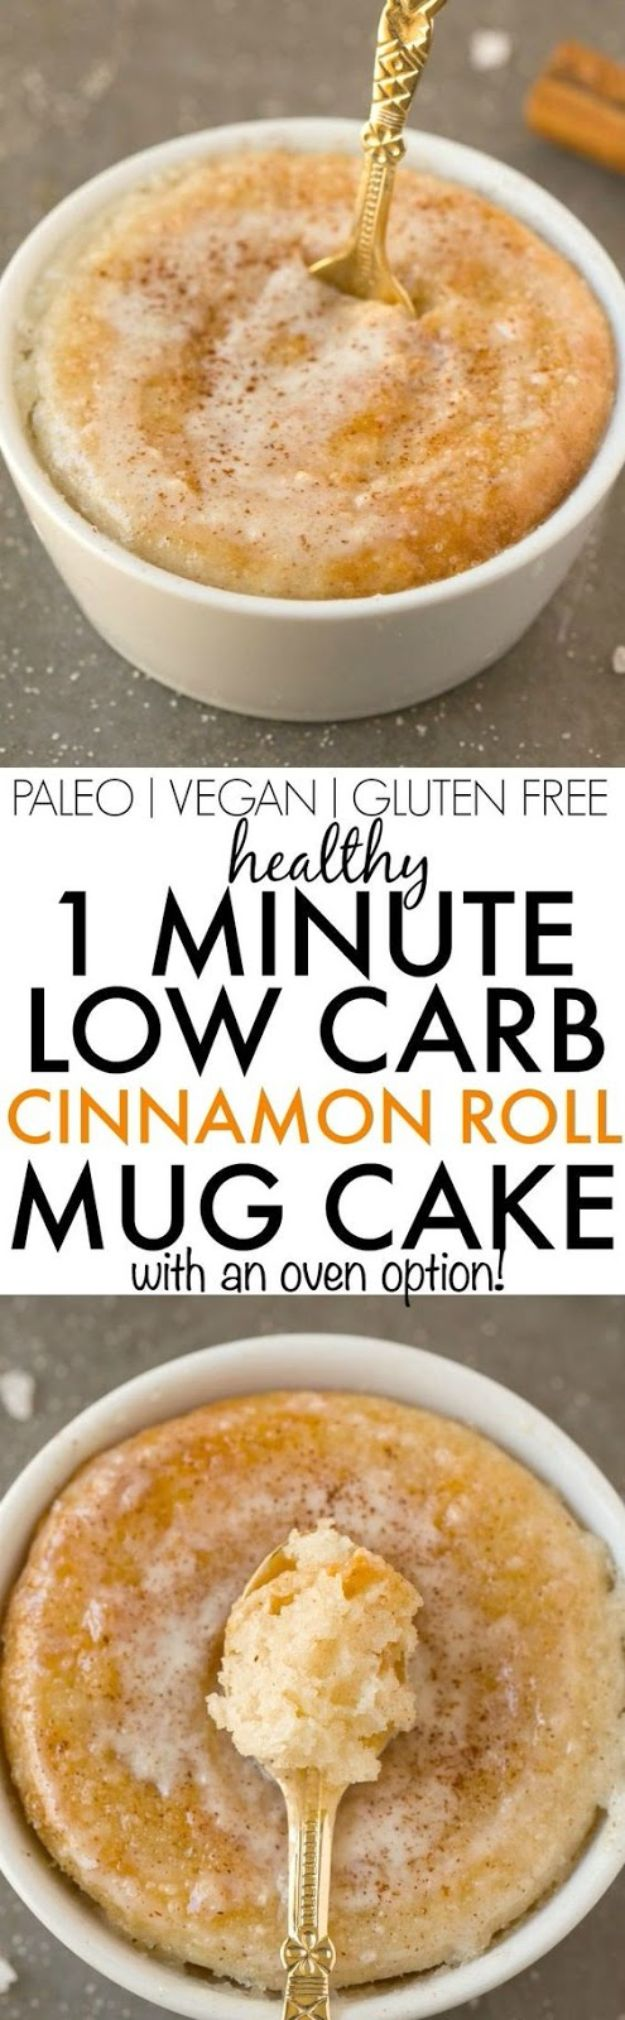 Best Keto Recipes - 1 Minute Low Carb Cinnamon Roll Mug Cake - Easy Ketogenic Recipe Ideas for Breakfast, Lunch, Dinner, Snack and Dessert - Quick Crockpot Meals, Fat Bombs, Gluten Free and Low Carb Foods To Make For The Keto Diet - Shakes, Protein and Cheese Dishes With No or Low Carbohydrates - Sugarfree Keto Cooking Idea and Techniques Keep Ketones Low To Burn Fat http://diyjoy.com/best-keto-recipes